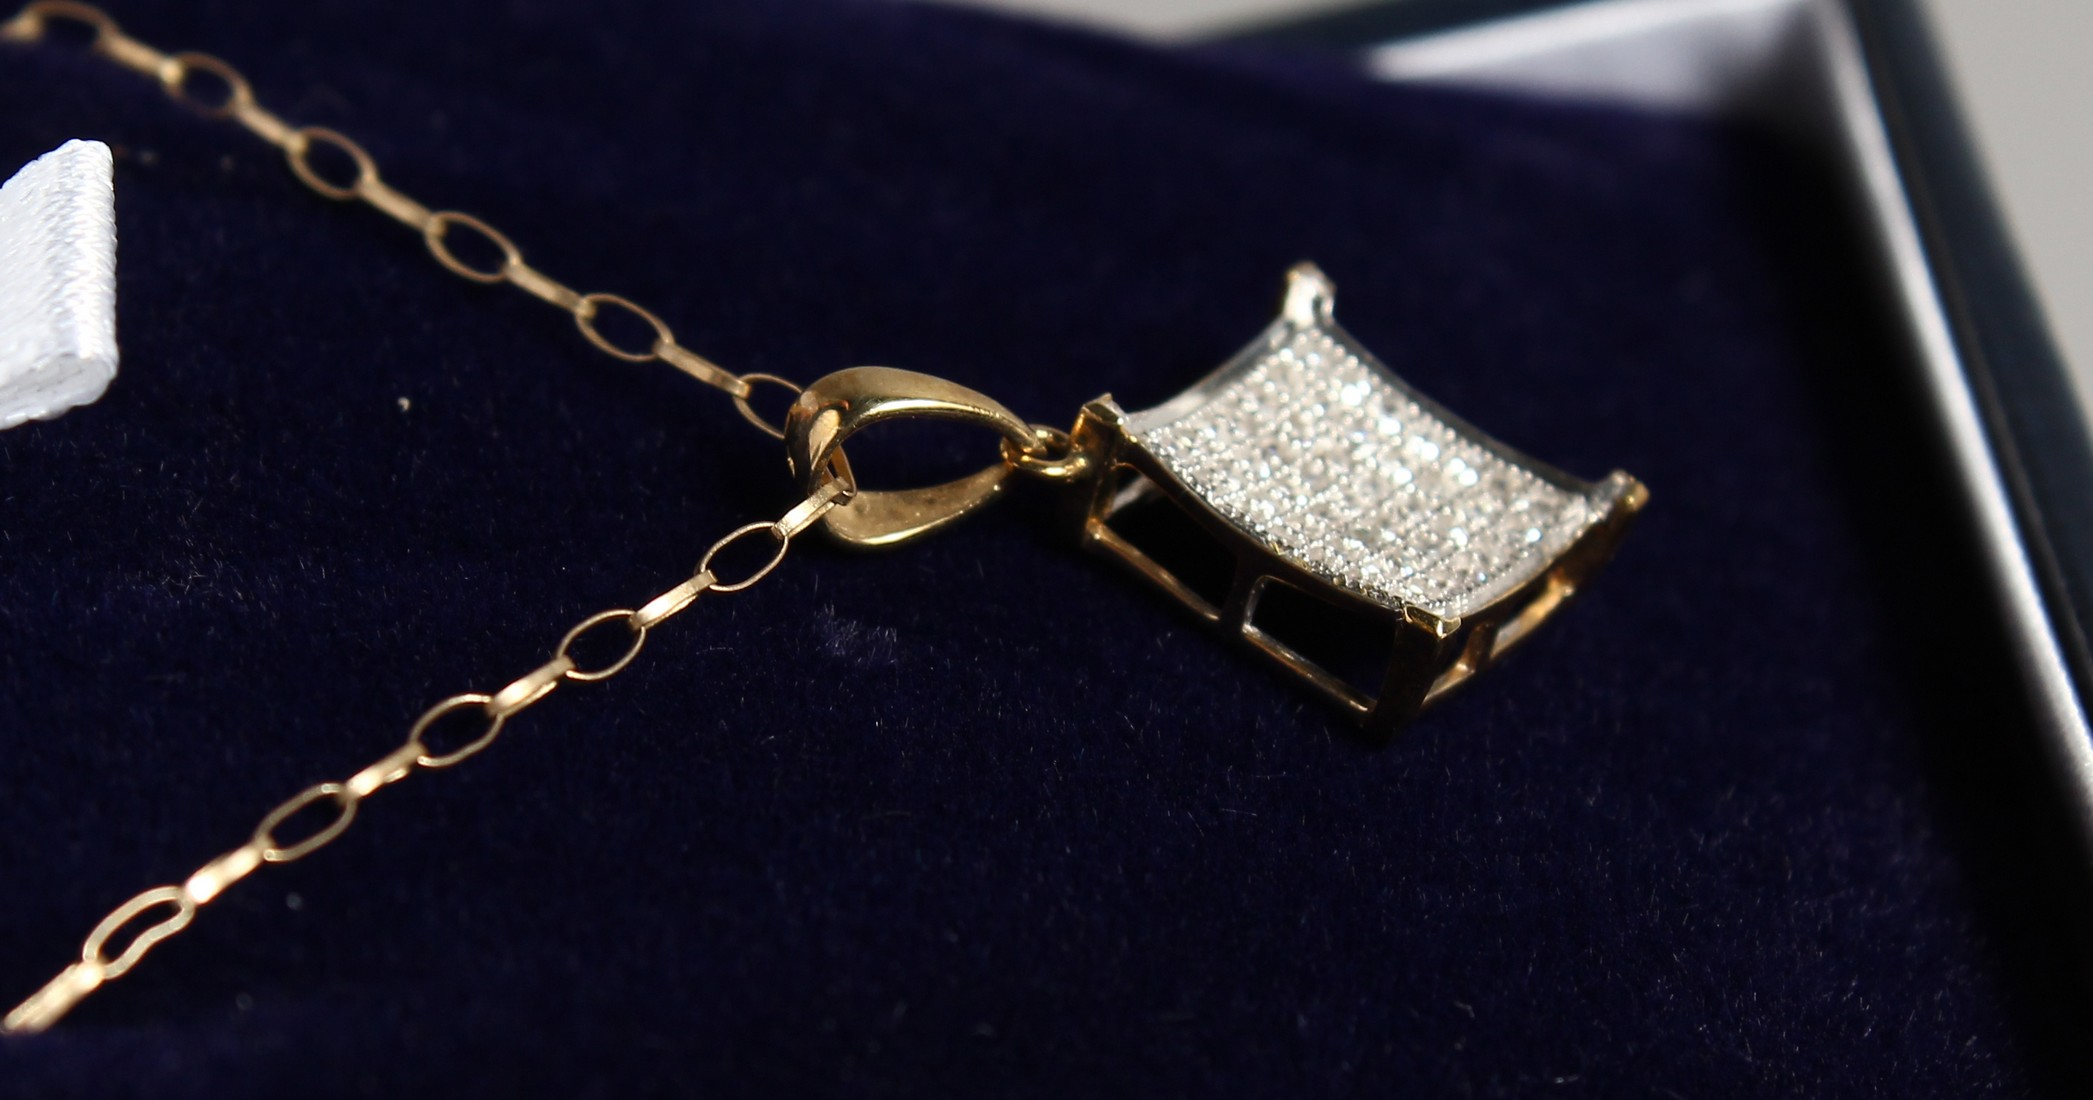 A 9CT GOLD AD DIAMOND PENDANT on a chain. - Image 2 of 2